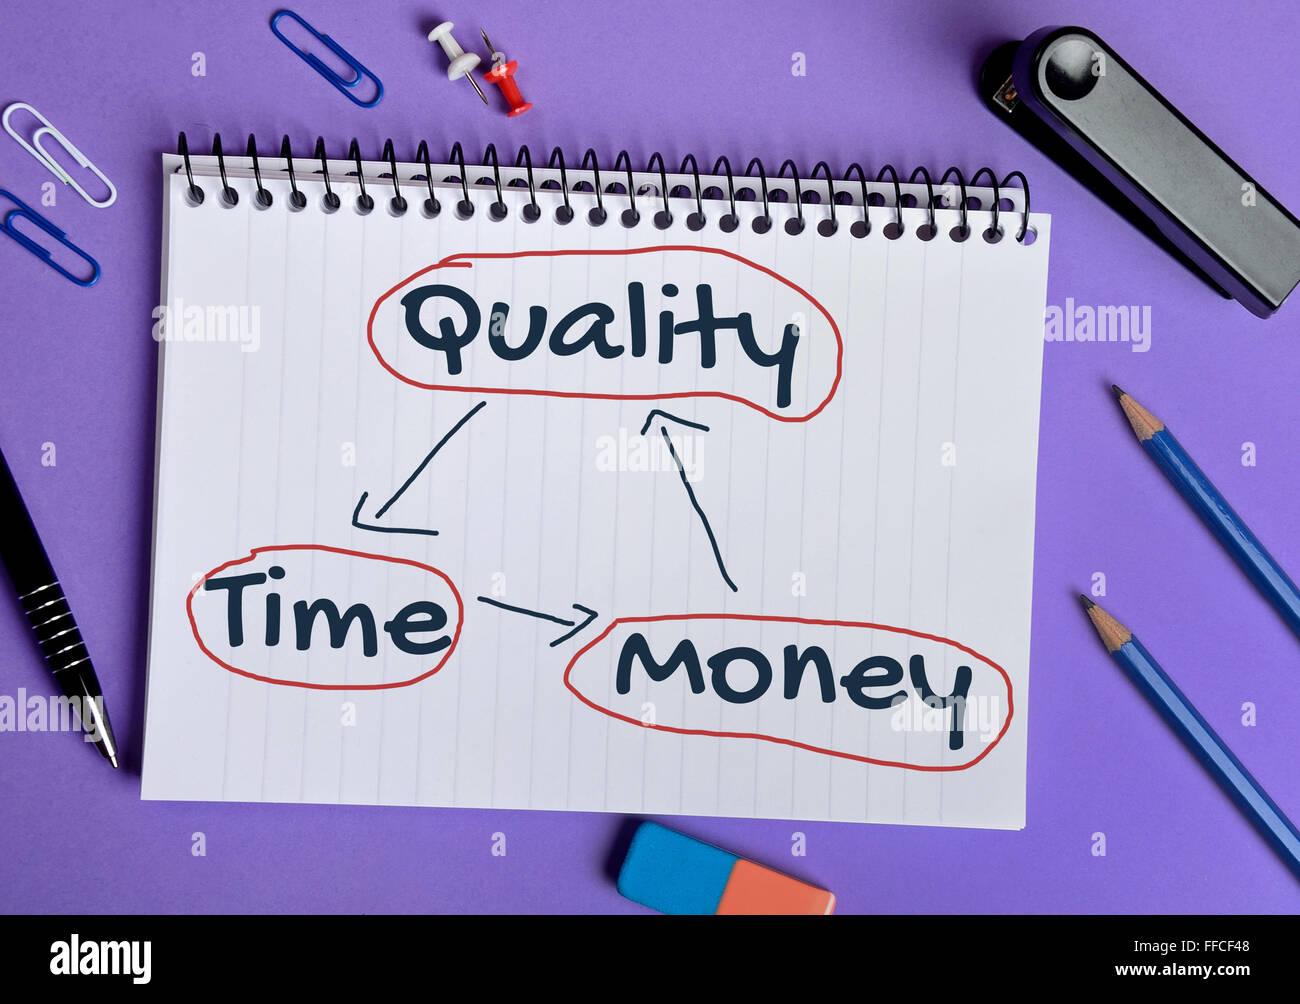 Quality Time Money word on notebook page - Stock Image